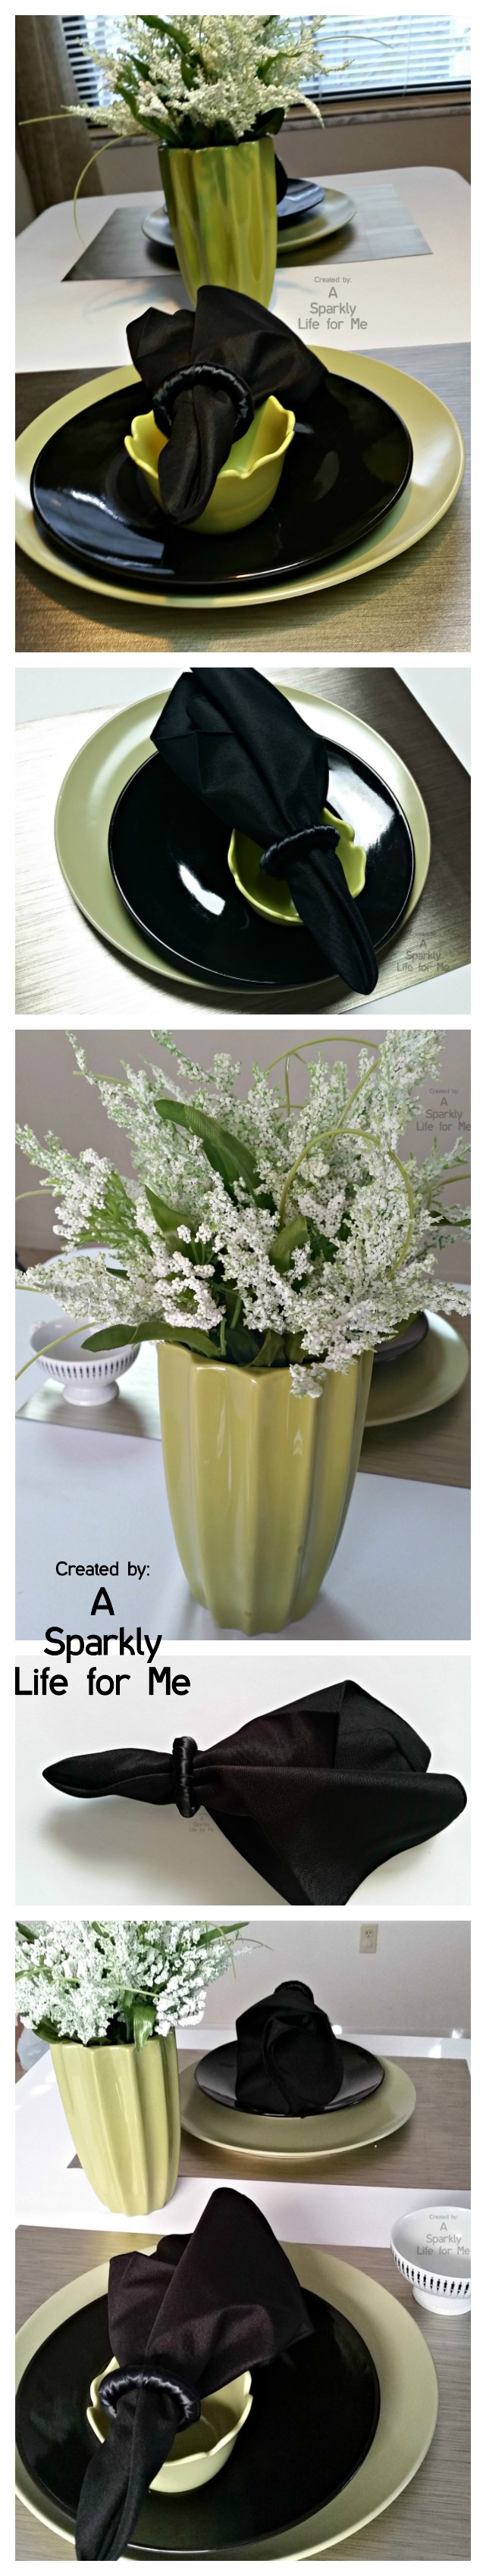 Modern Green, Black, and White Table Decor by A Sparkly Life for Me 1